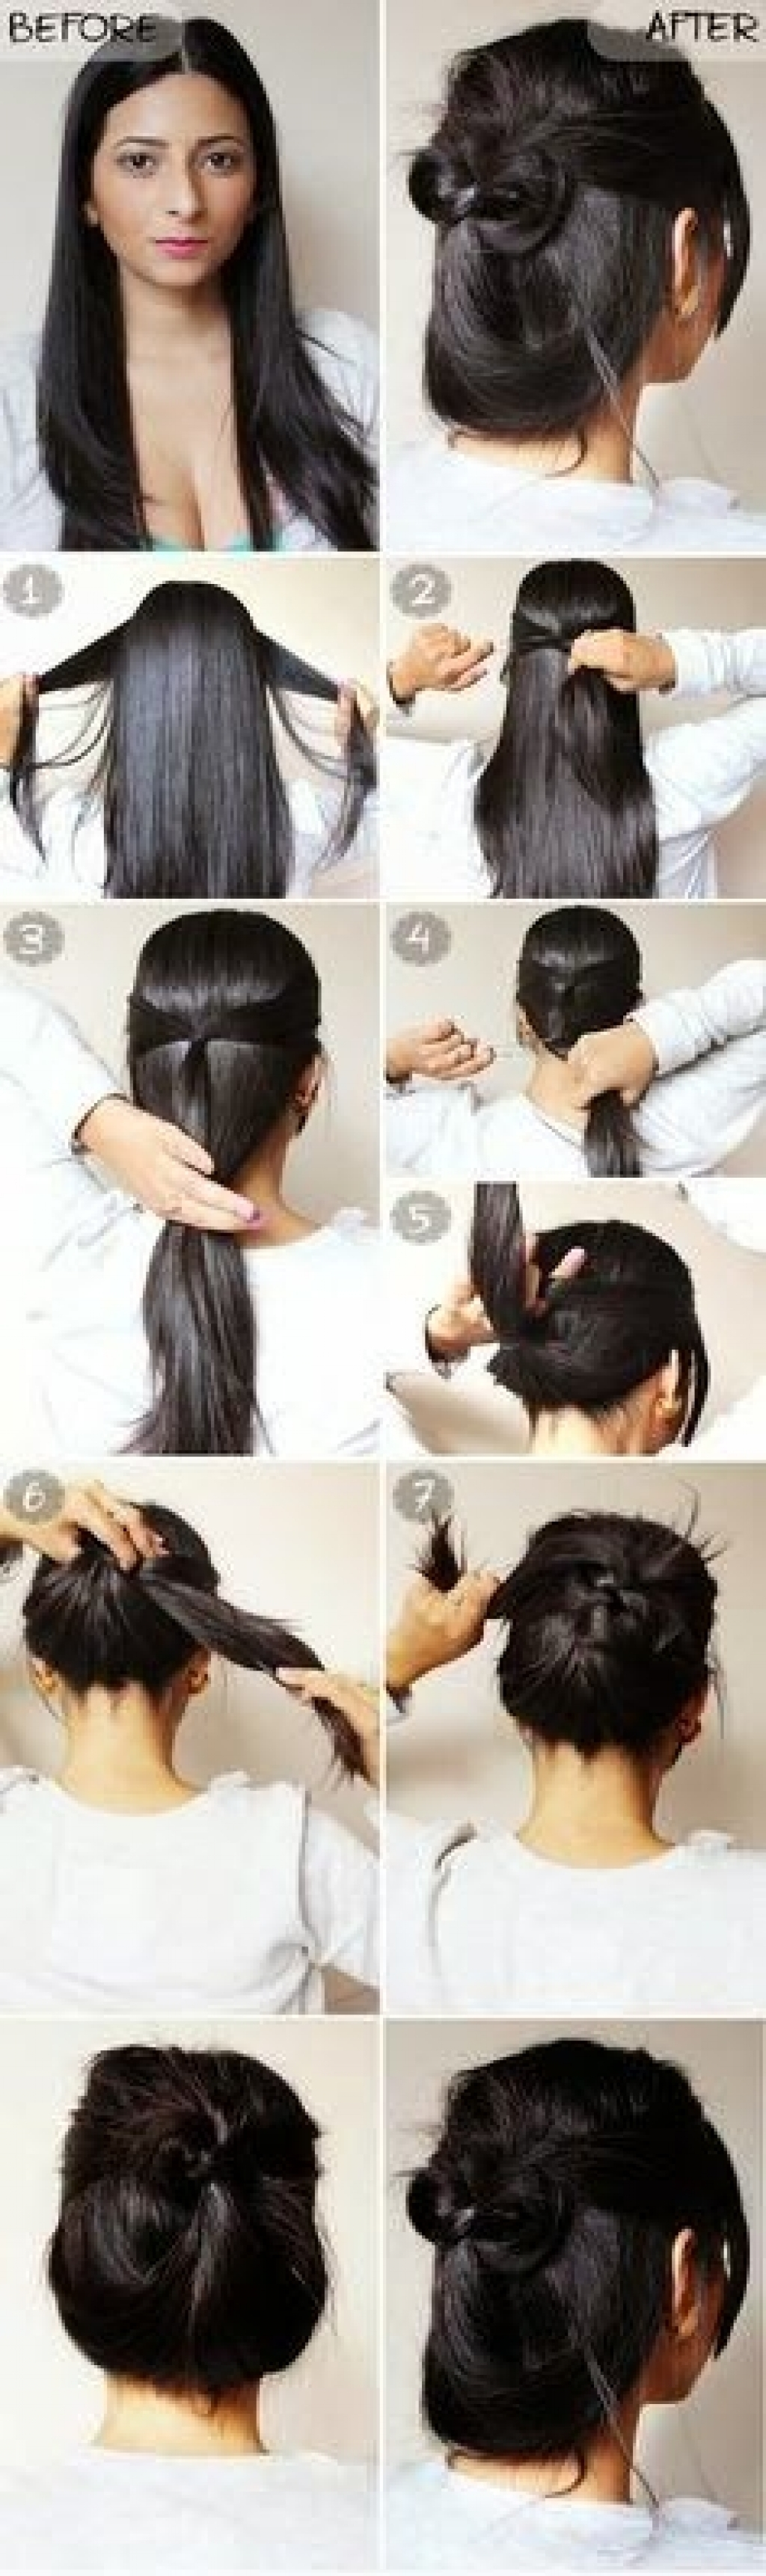 Quick Amp Easy 2 Minute Casual Updo Tutorial Haircuts Amp Hairstyles Regarding Favorite Casual Wedding Hairstyles For Long Hair (View 11 of 15)